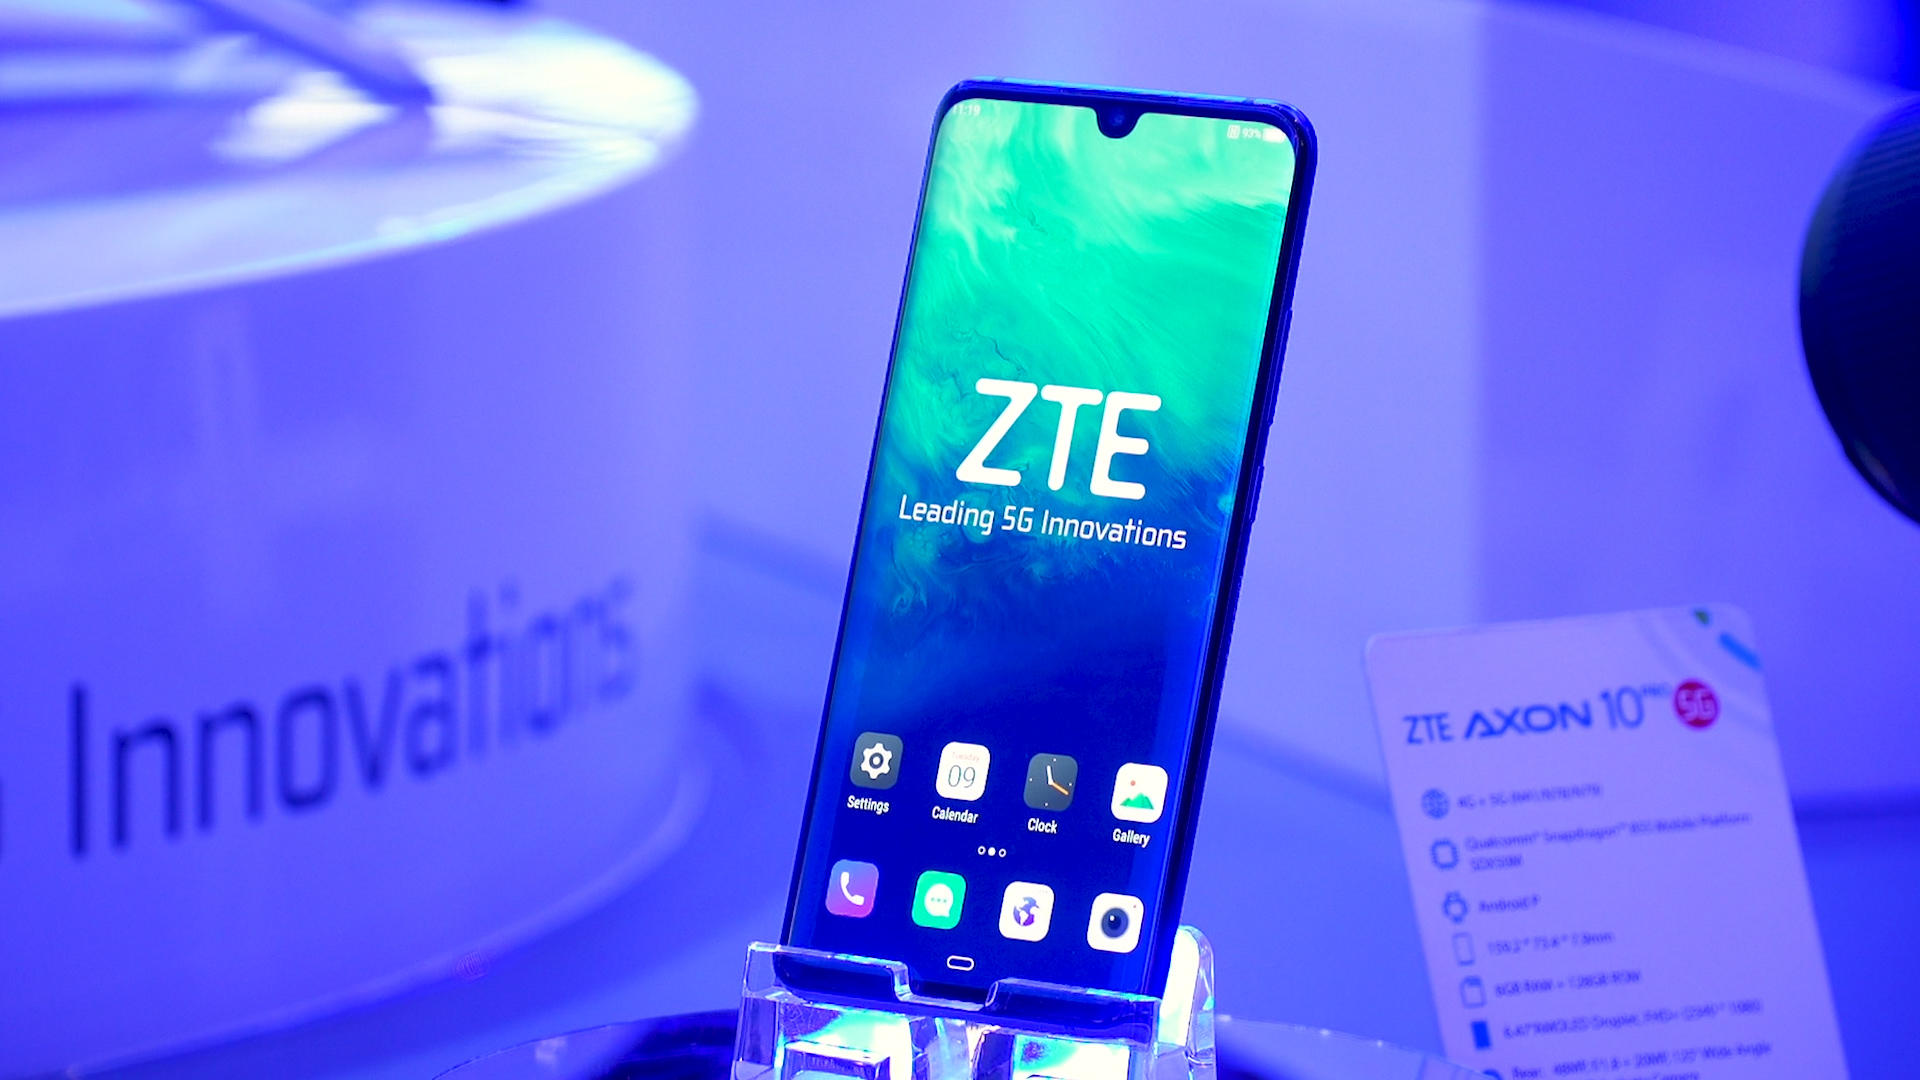 Video: A powerful selfie camera and 5G rule ZTE's MWC phones